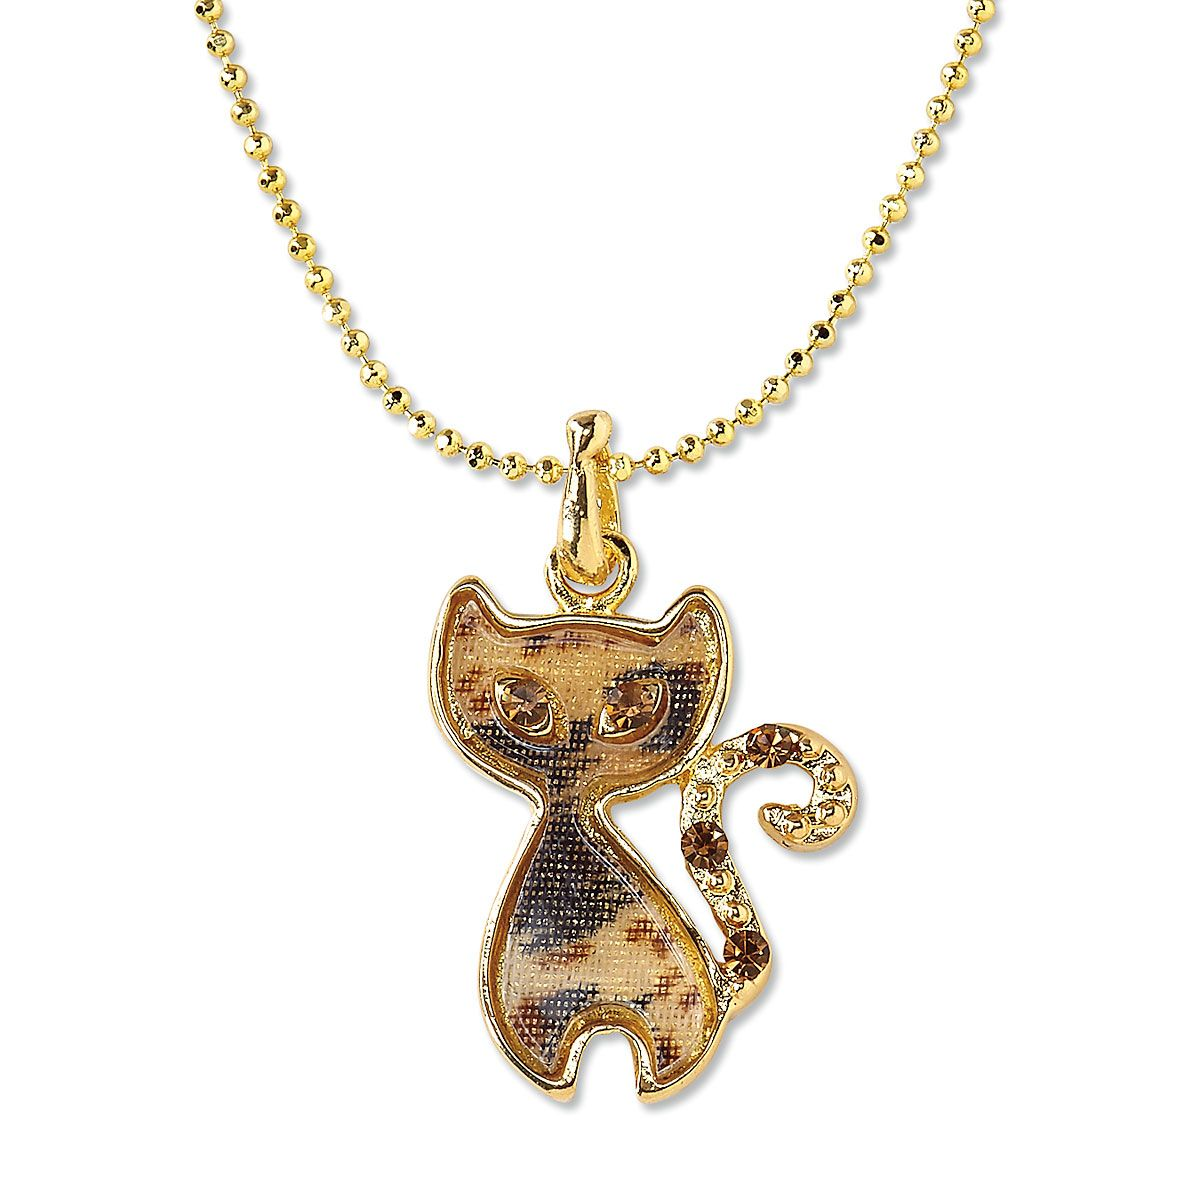 chain pendant cat accessories long women brand crystal bonsny newei necklace zinc necklaces alloy statement fashion from item jewelry new in girl